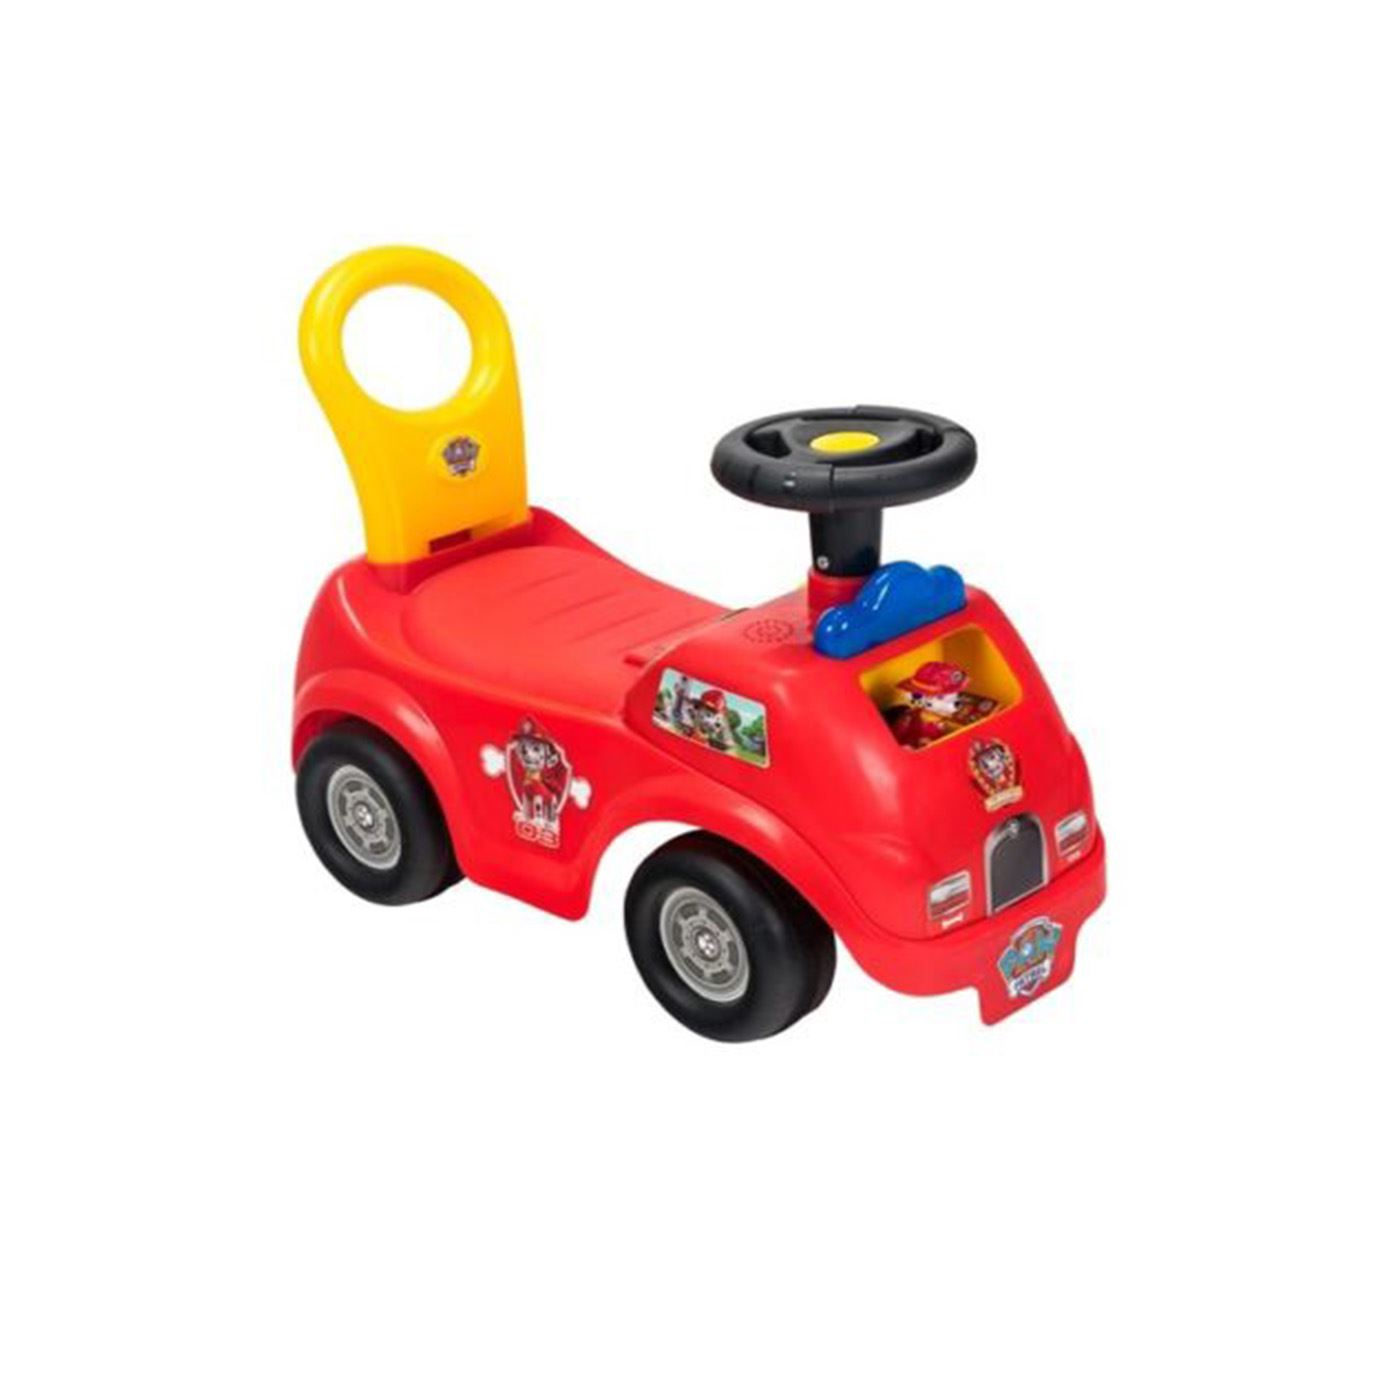 Sports Toys Outdoor Paw Patrol S Marshall Activity Fun Fire Truck